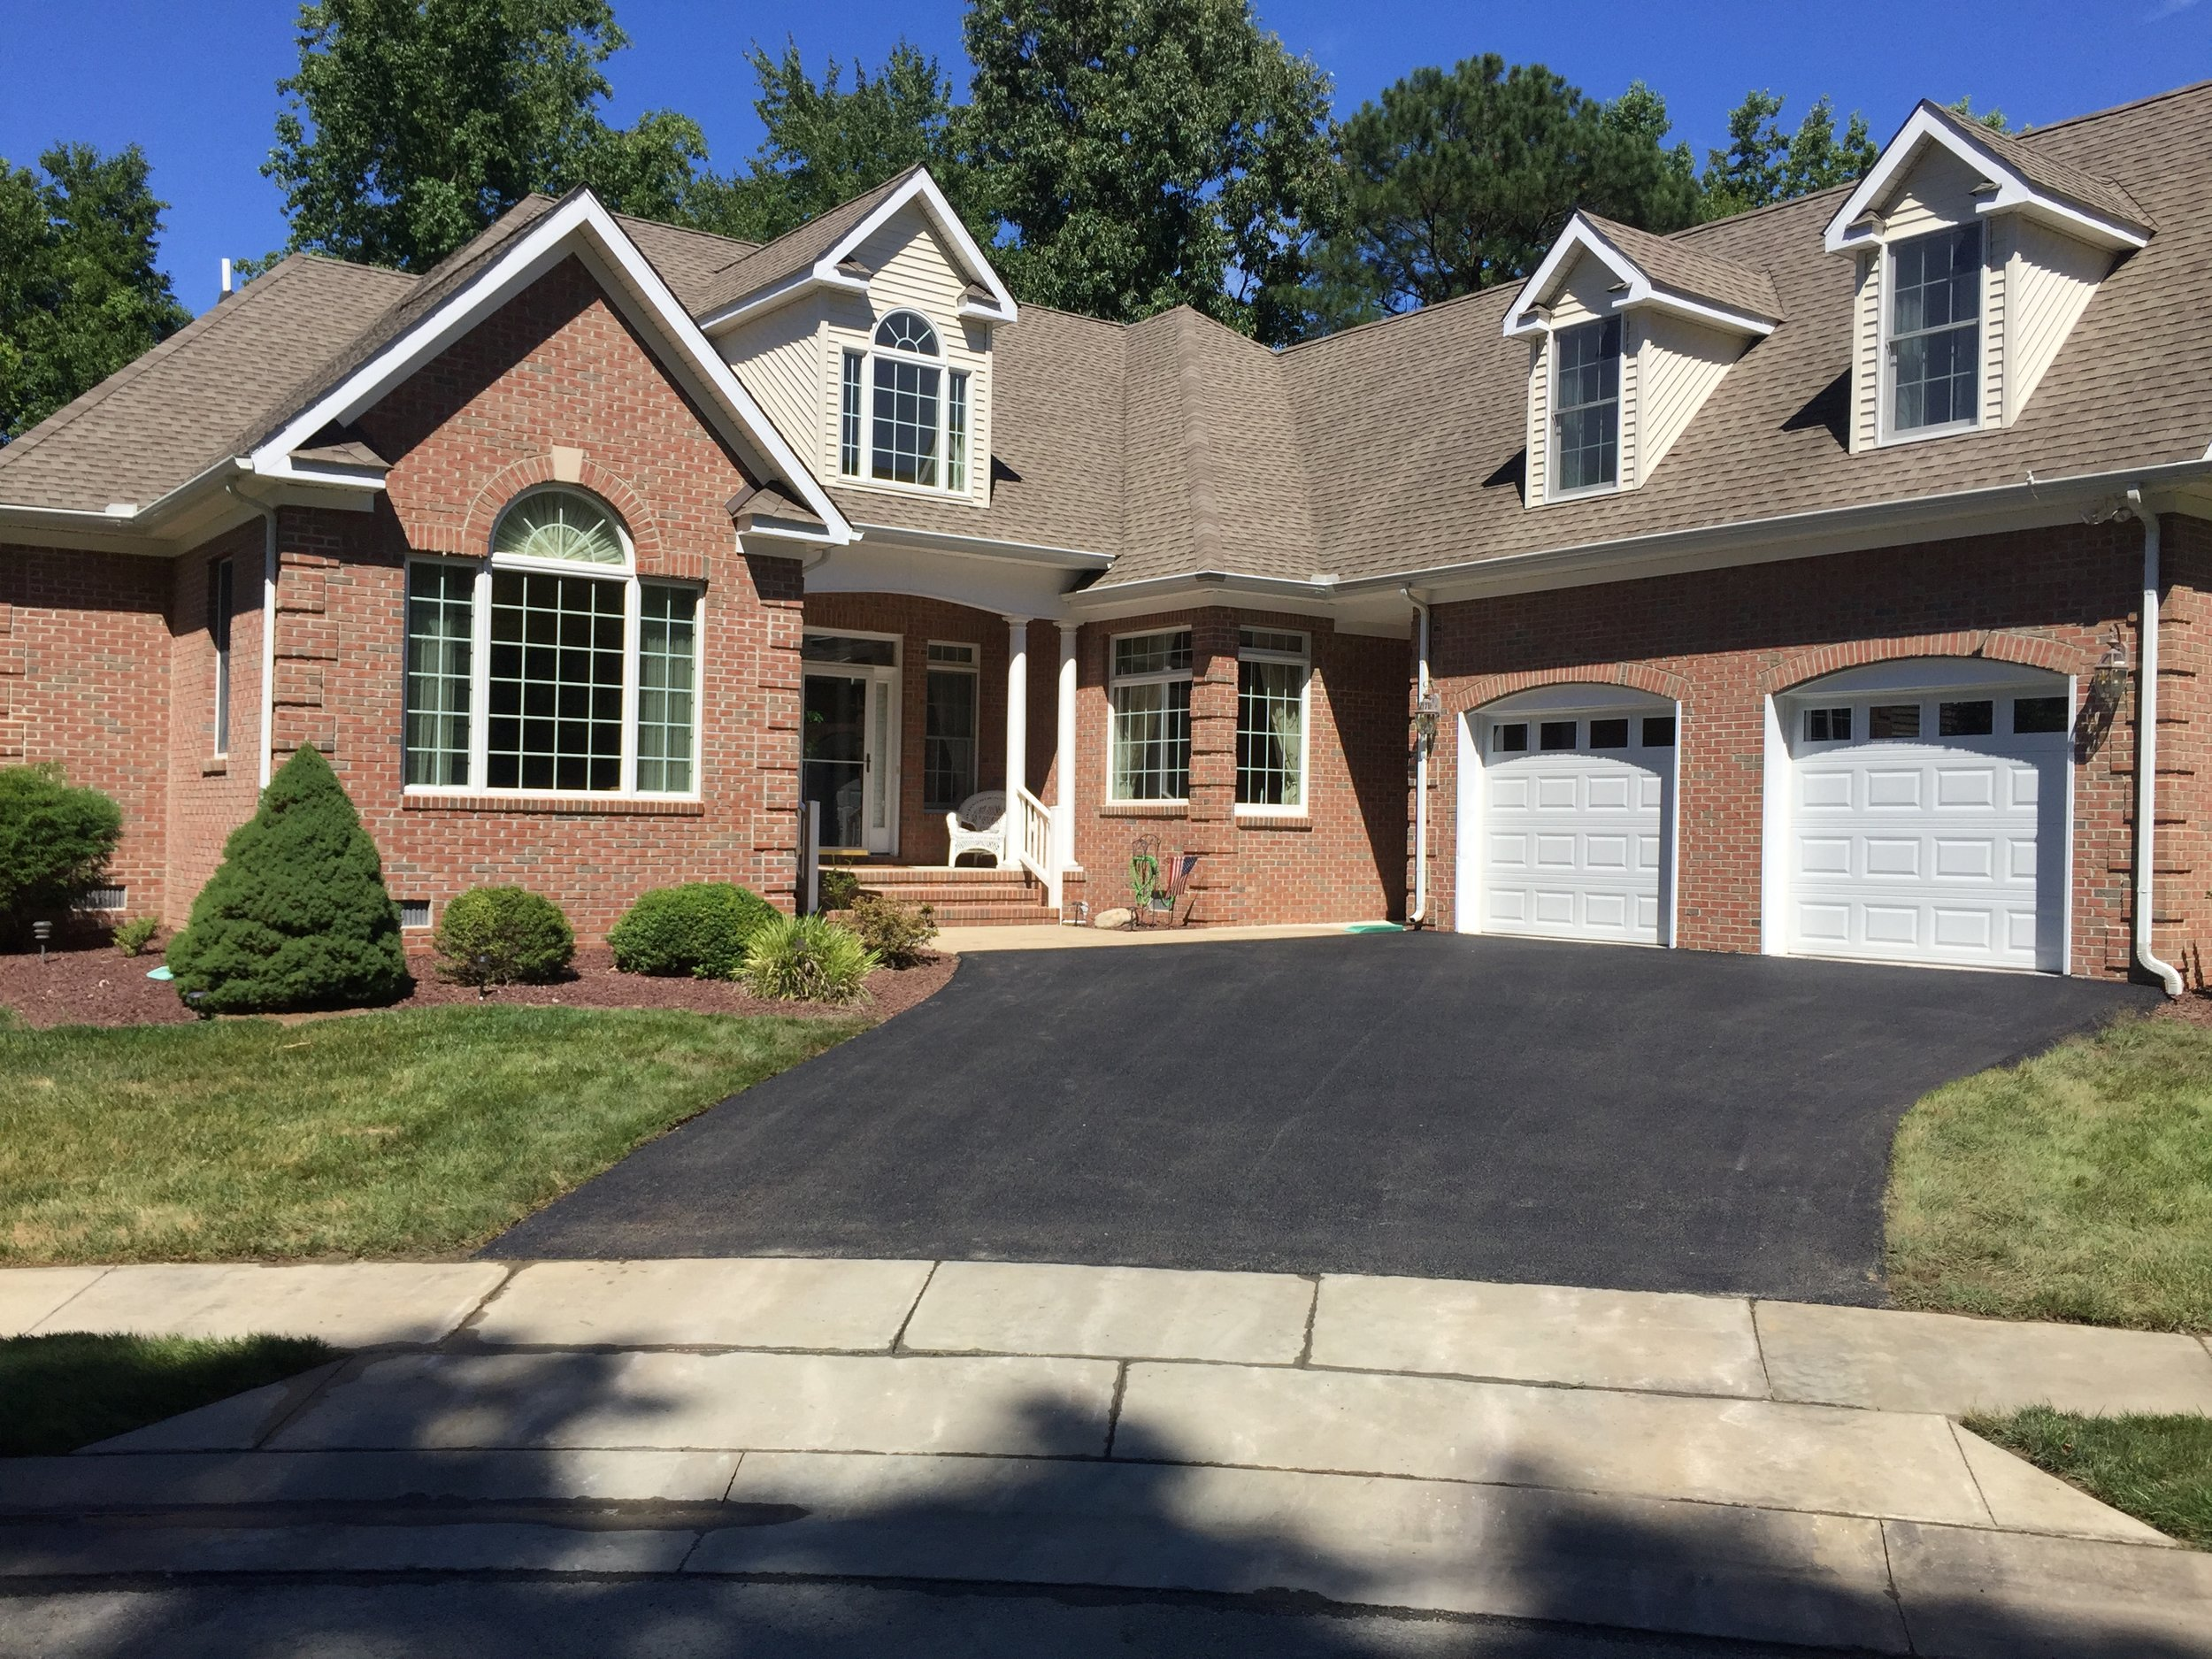 Professional   Residential Paving    View Our Services  Request an Estimate